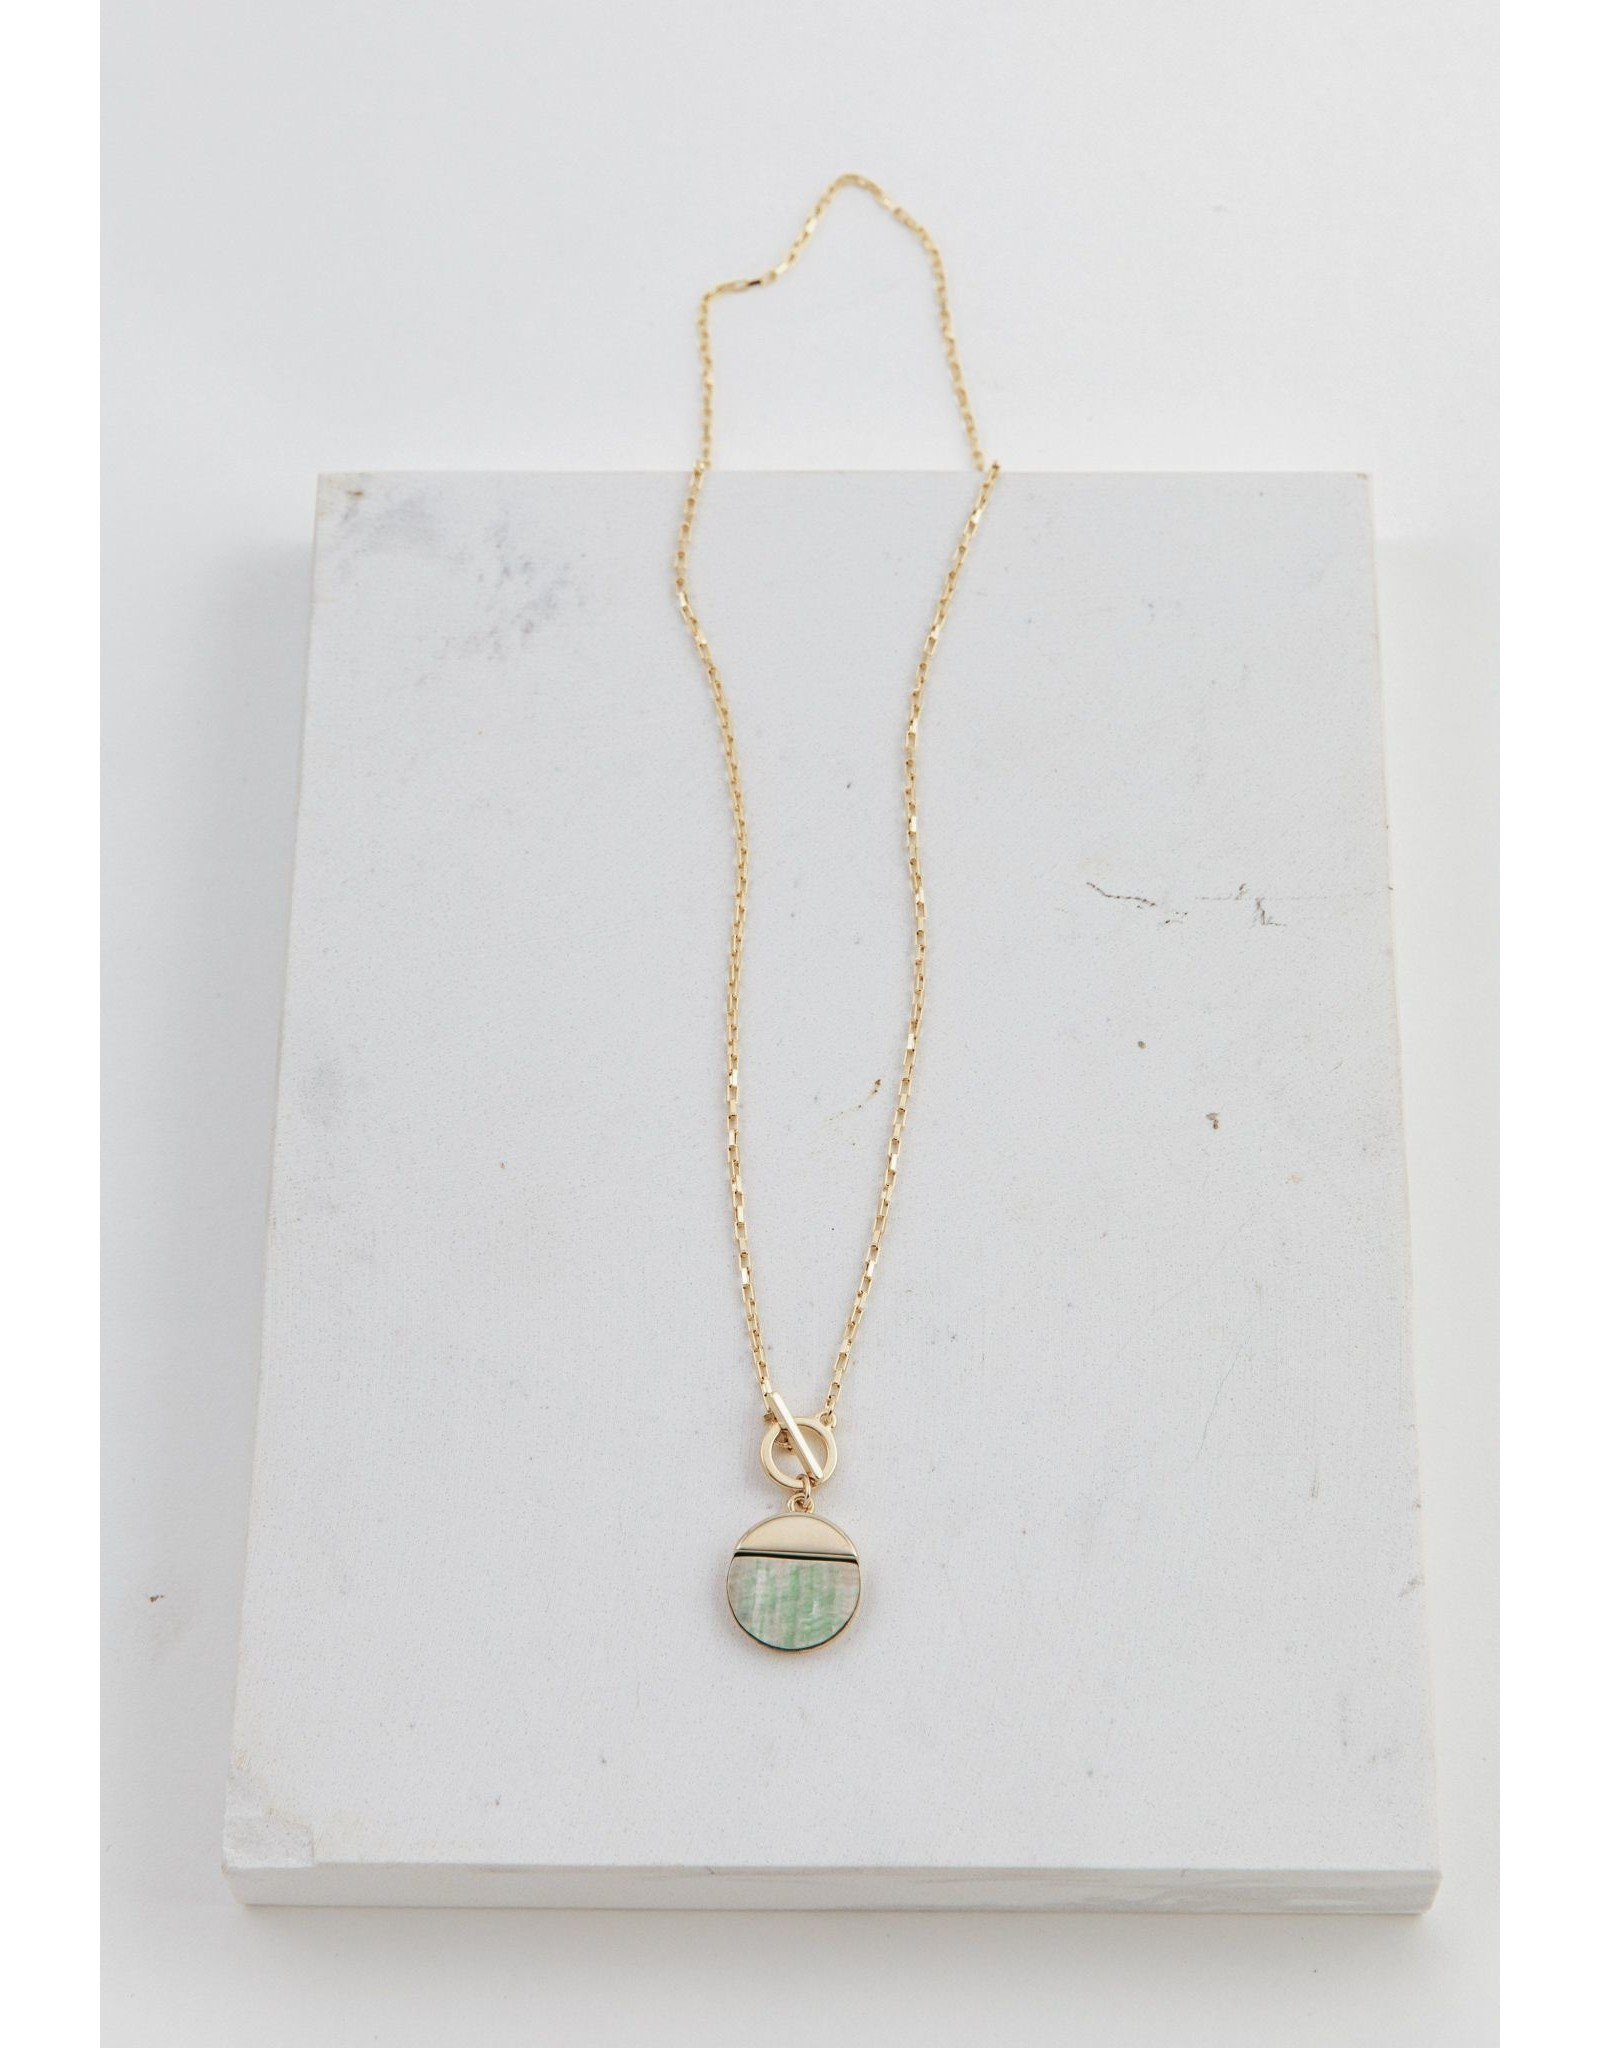 Lover's Tempo Oasis Toggle Necklace - Abalone